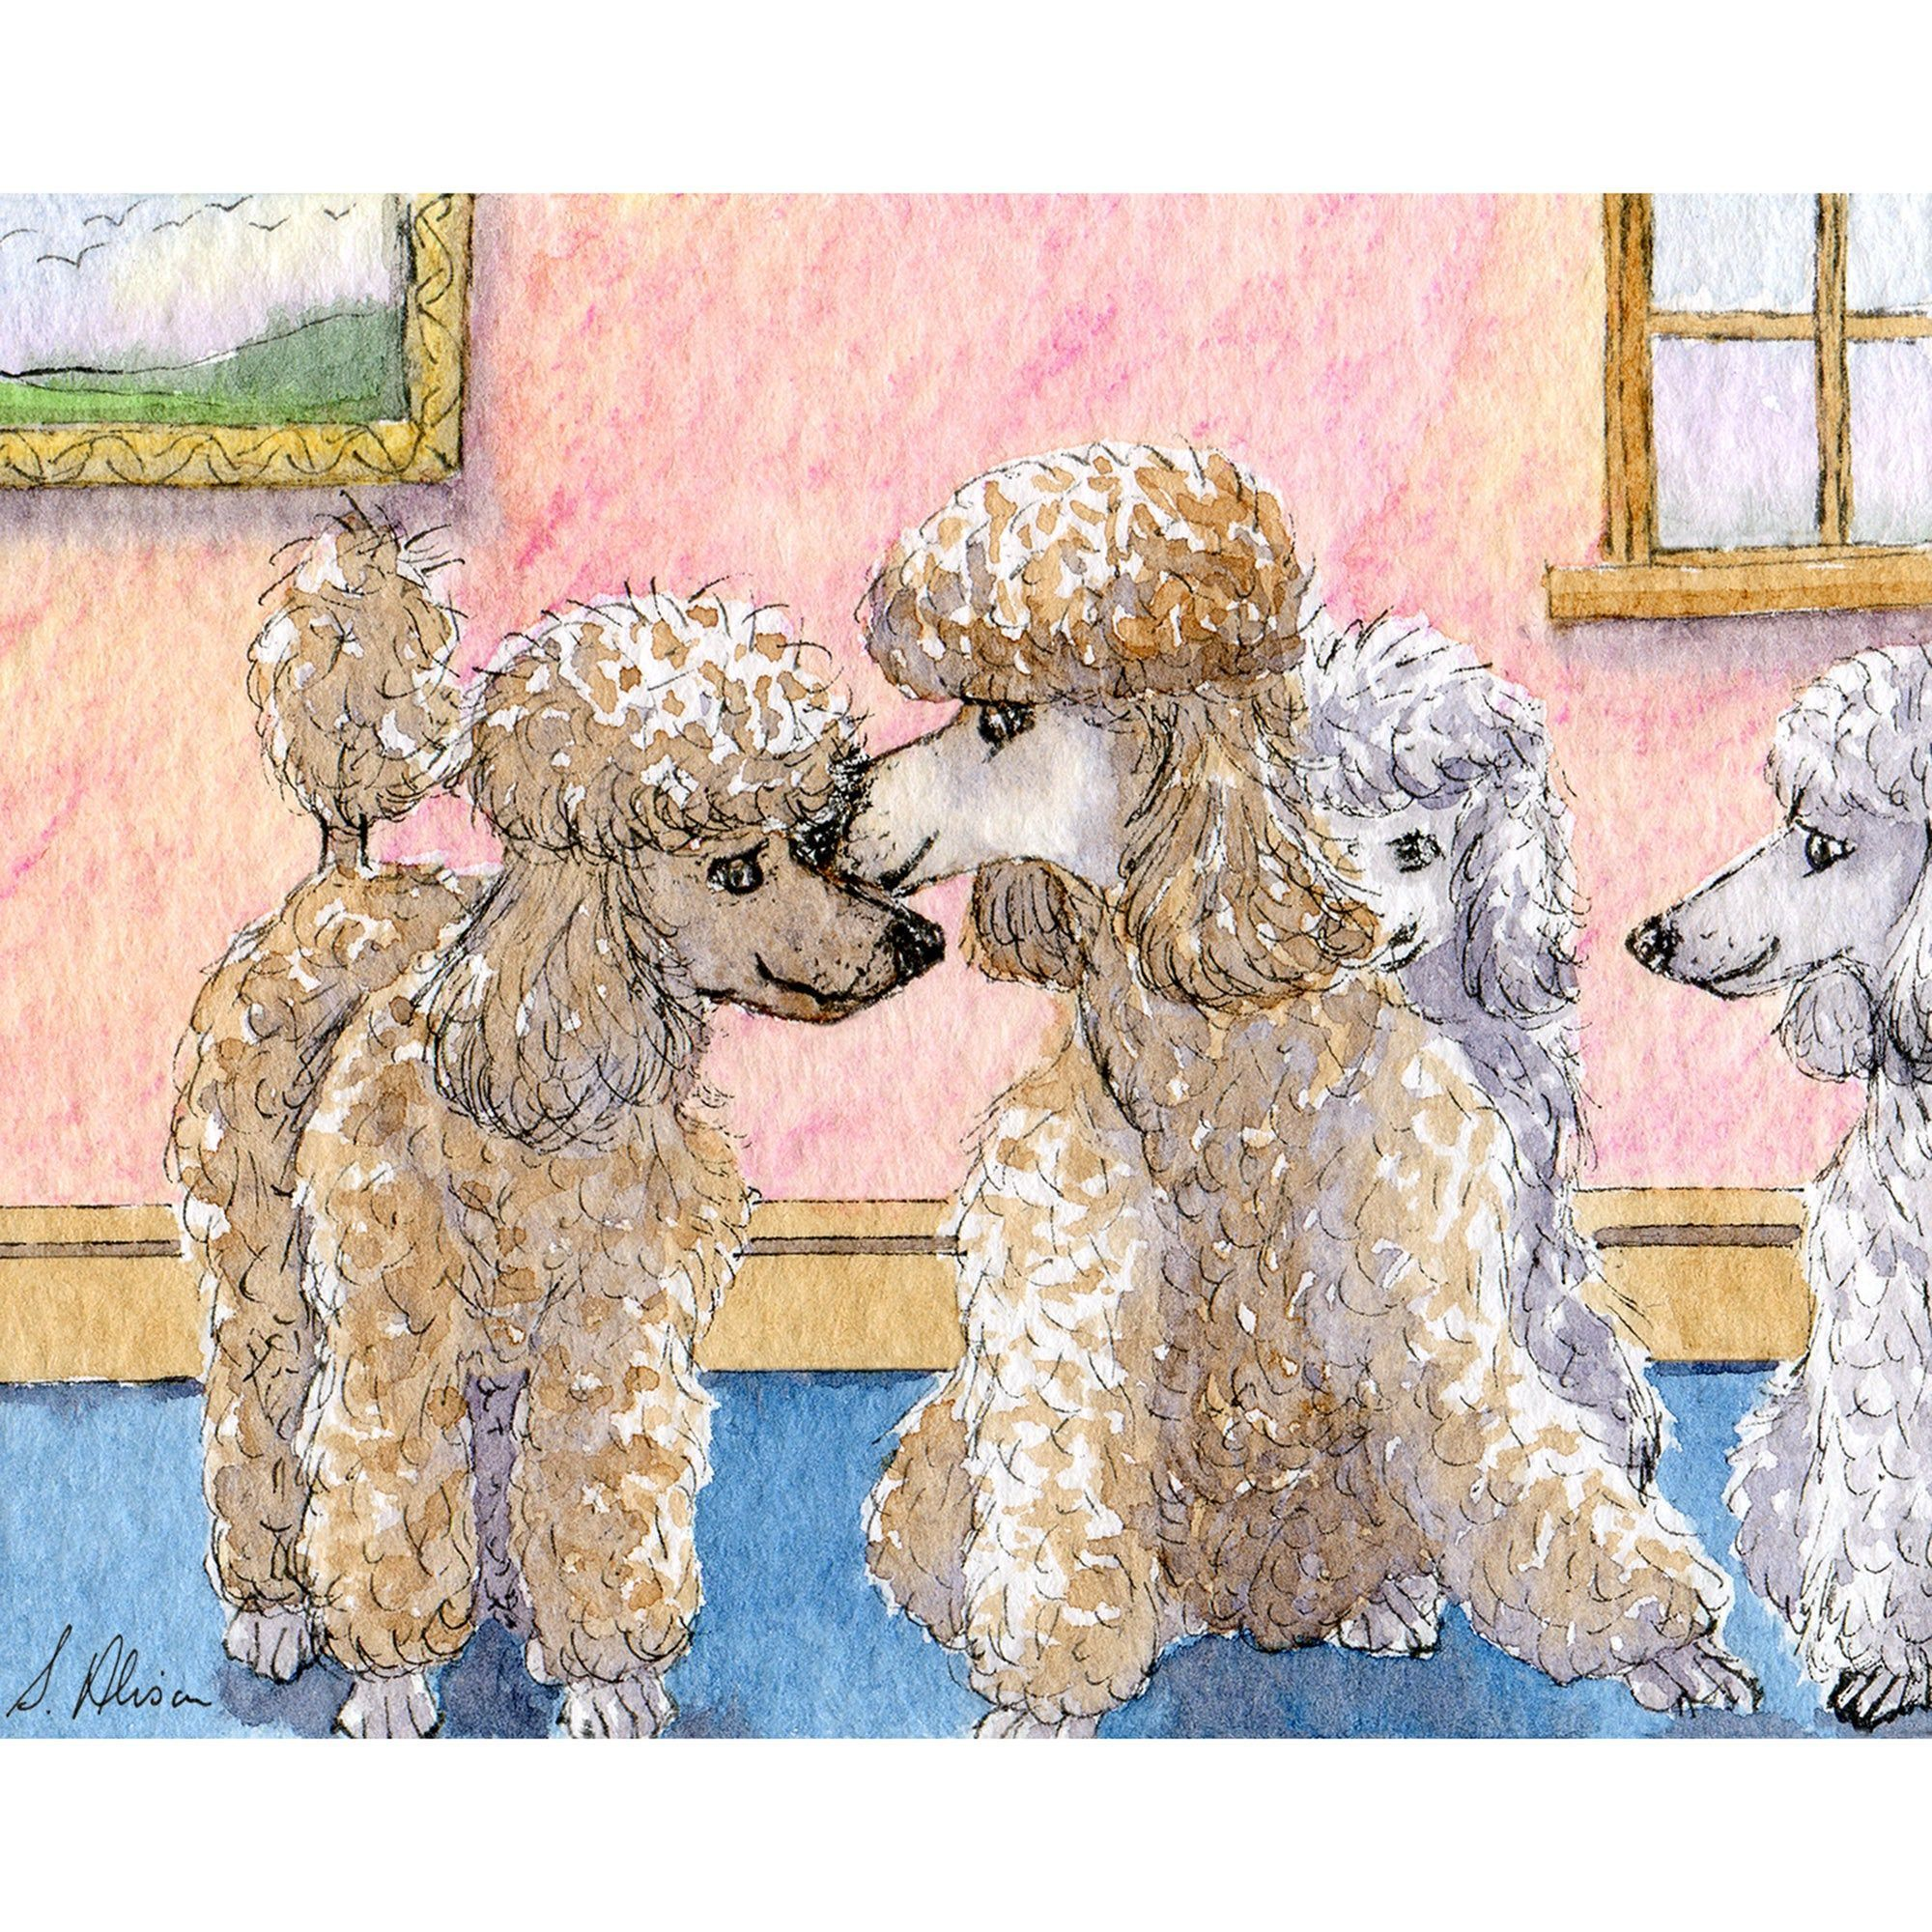 Poodle dog 5x7 8x10 11x14 art print from watercolour